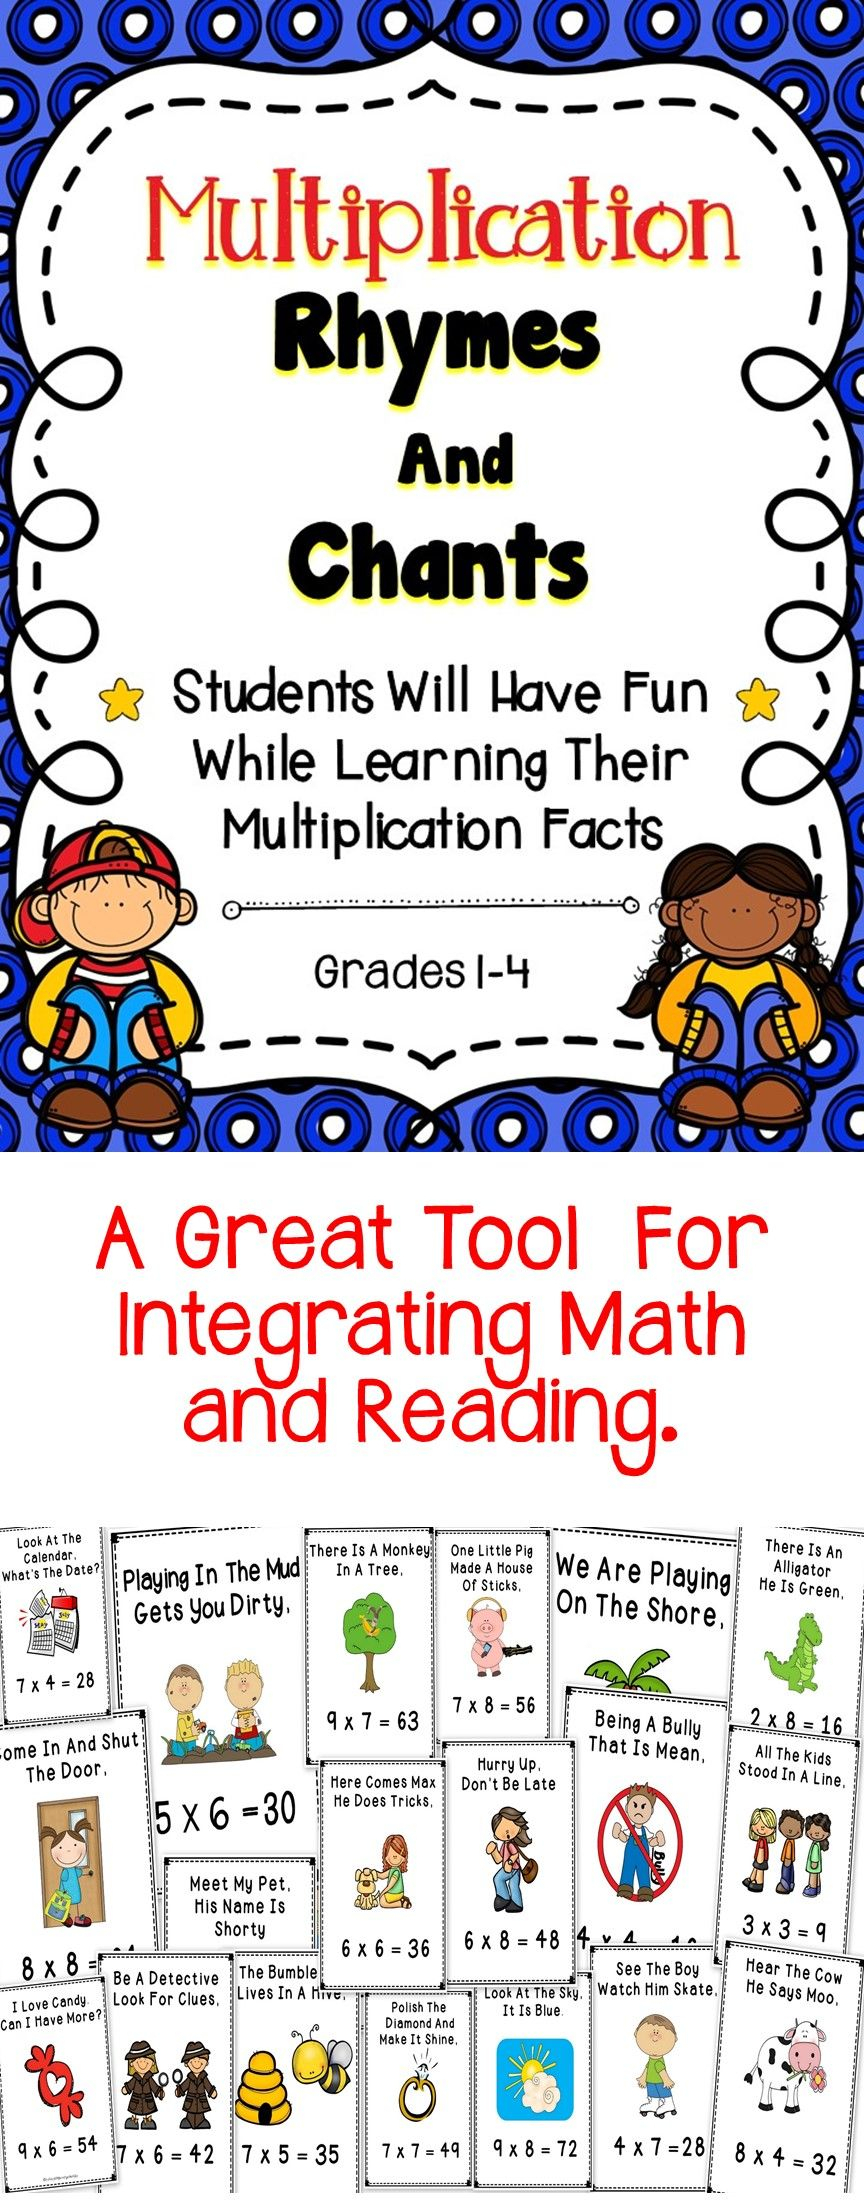 Multiplication Rhymes And Chants | Math Lessons, Math throughout Printable Multiplication Rhymes